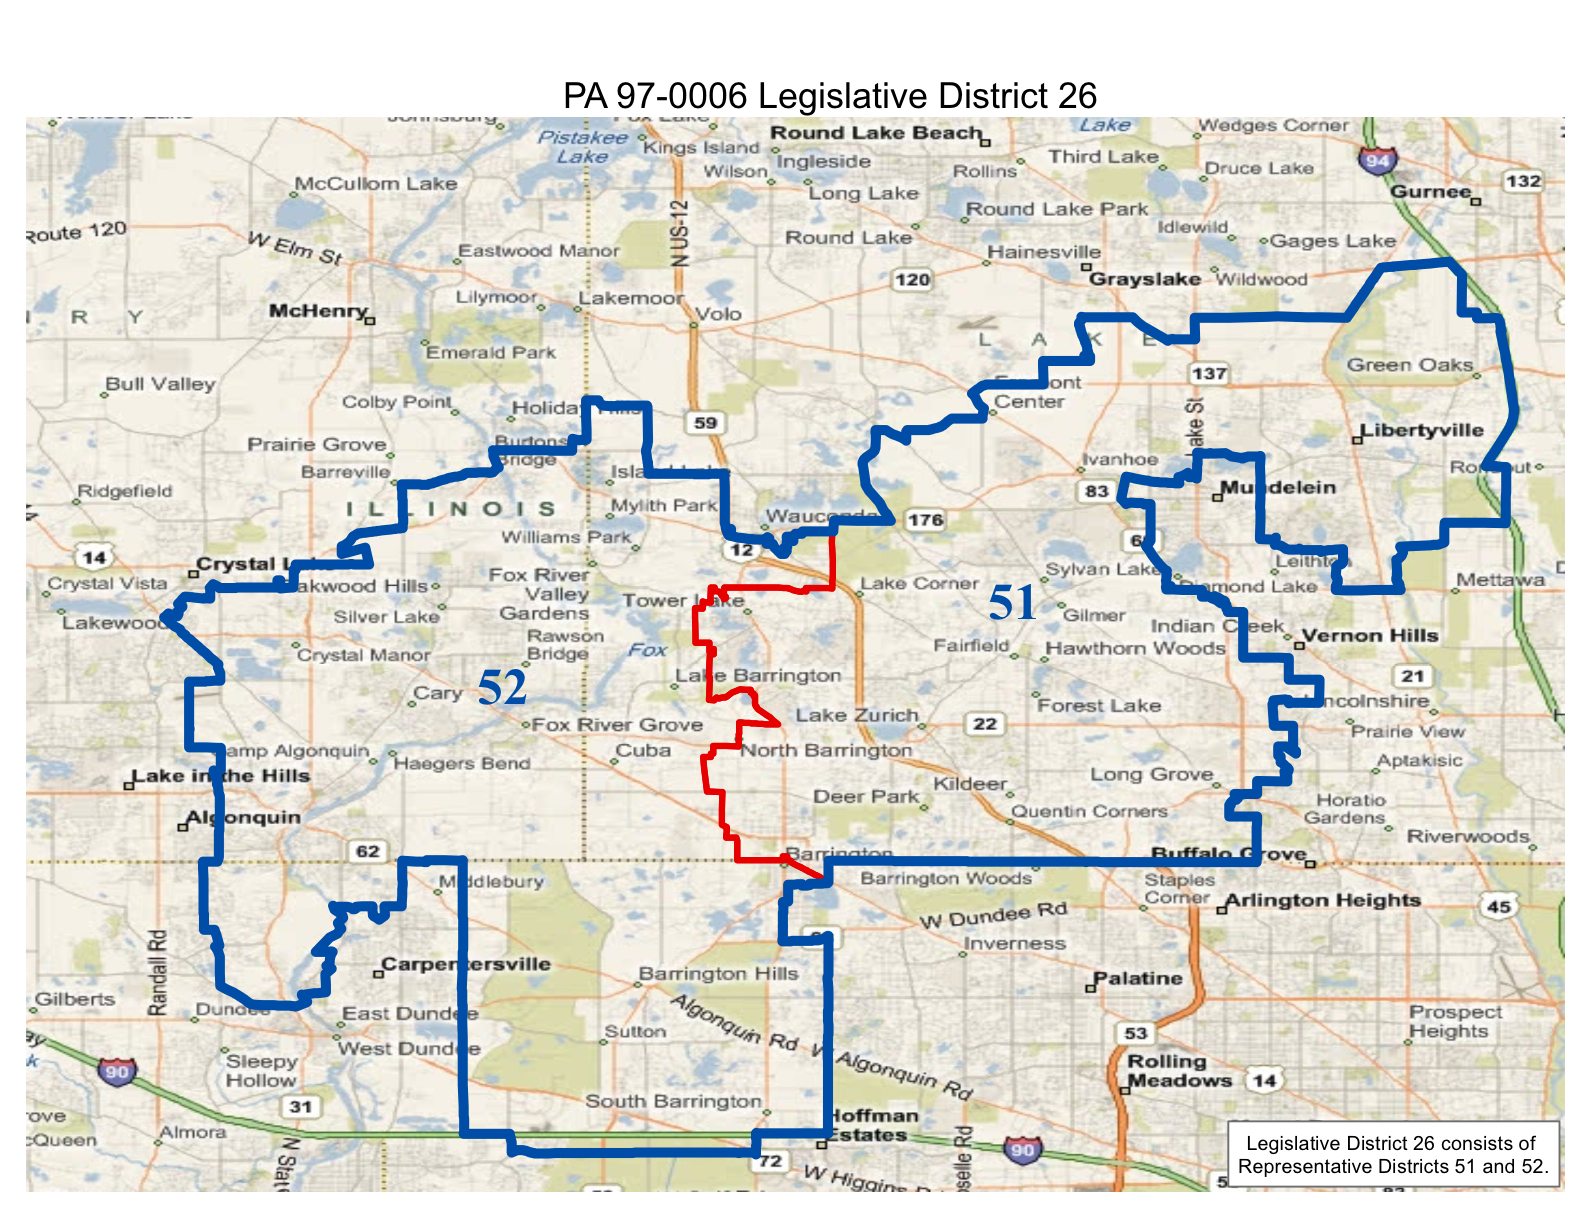 Will County Politics: Realigned Illinois State Legislative and State on illinois judicial districts map, illinois house districts by zip code, illinois representative districts, illinois 4th district, us appeals court circuits map, illinois house of representatives, illinois appellate districts, illinois neighborhood map, illinois state land map, illinois state legislature, illinois united states map, illinois senatorial districts, chicago police districts zones map, illinois voting districts map, illinois district 18, illinois senators and representatives, illinois congressional districts, illinois state rep map, illinois state legislative map, illinois state legislative districts,